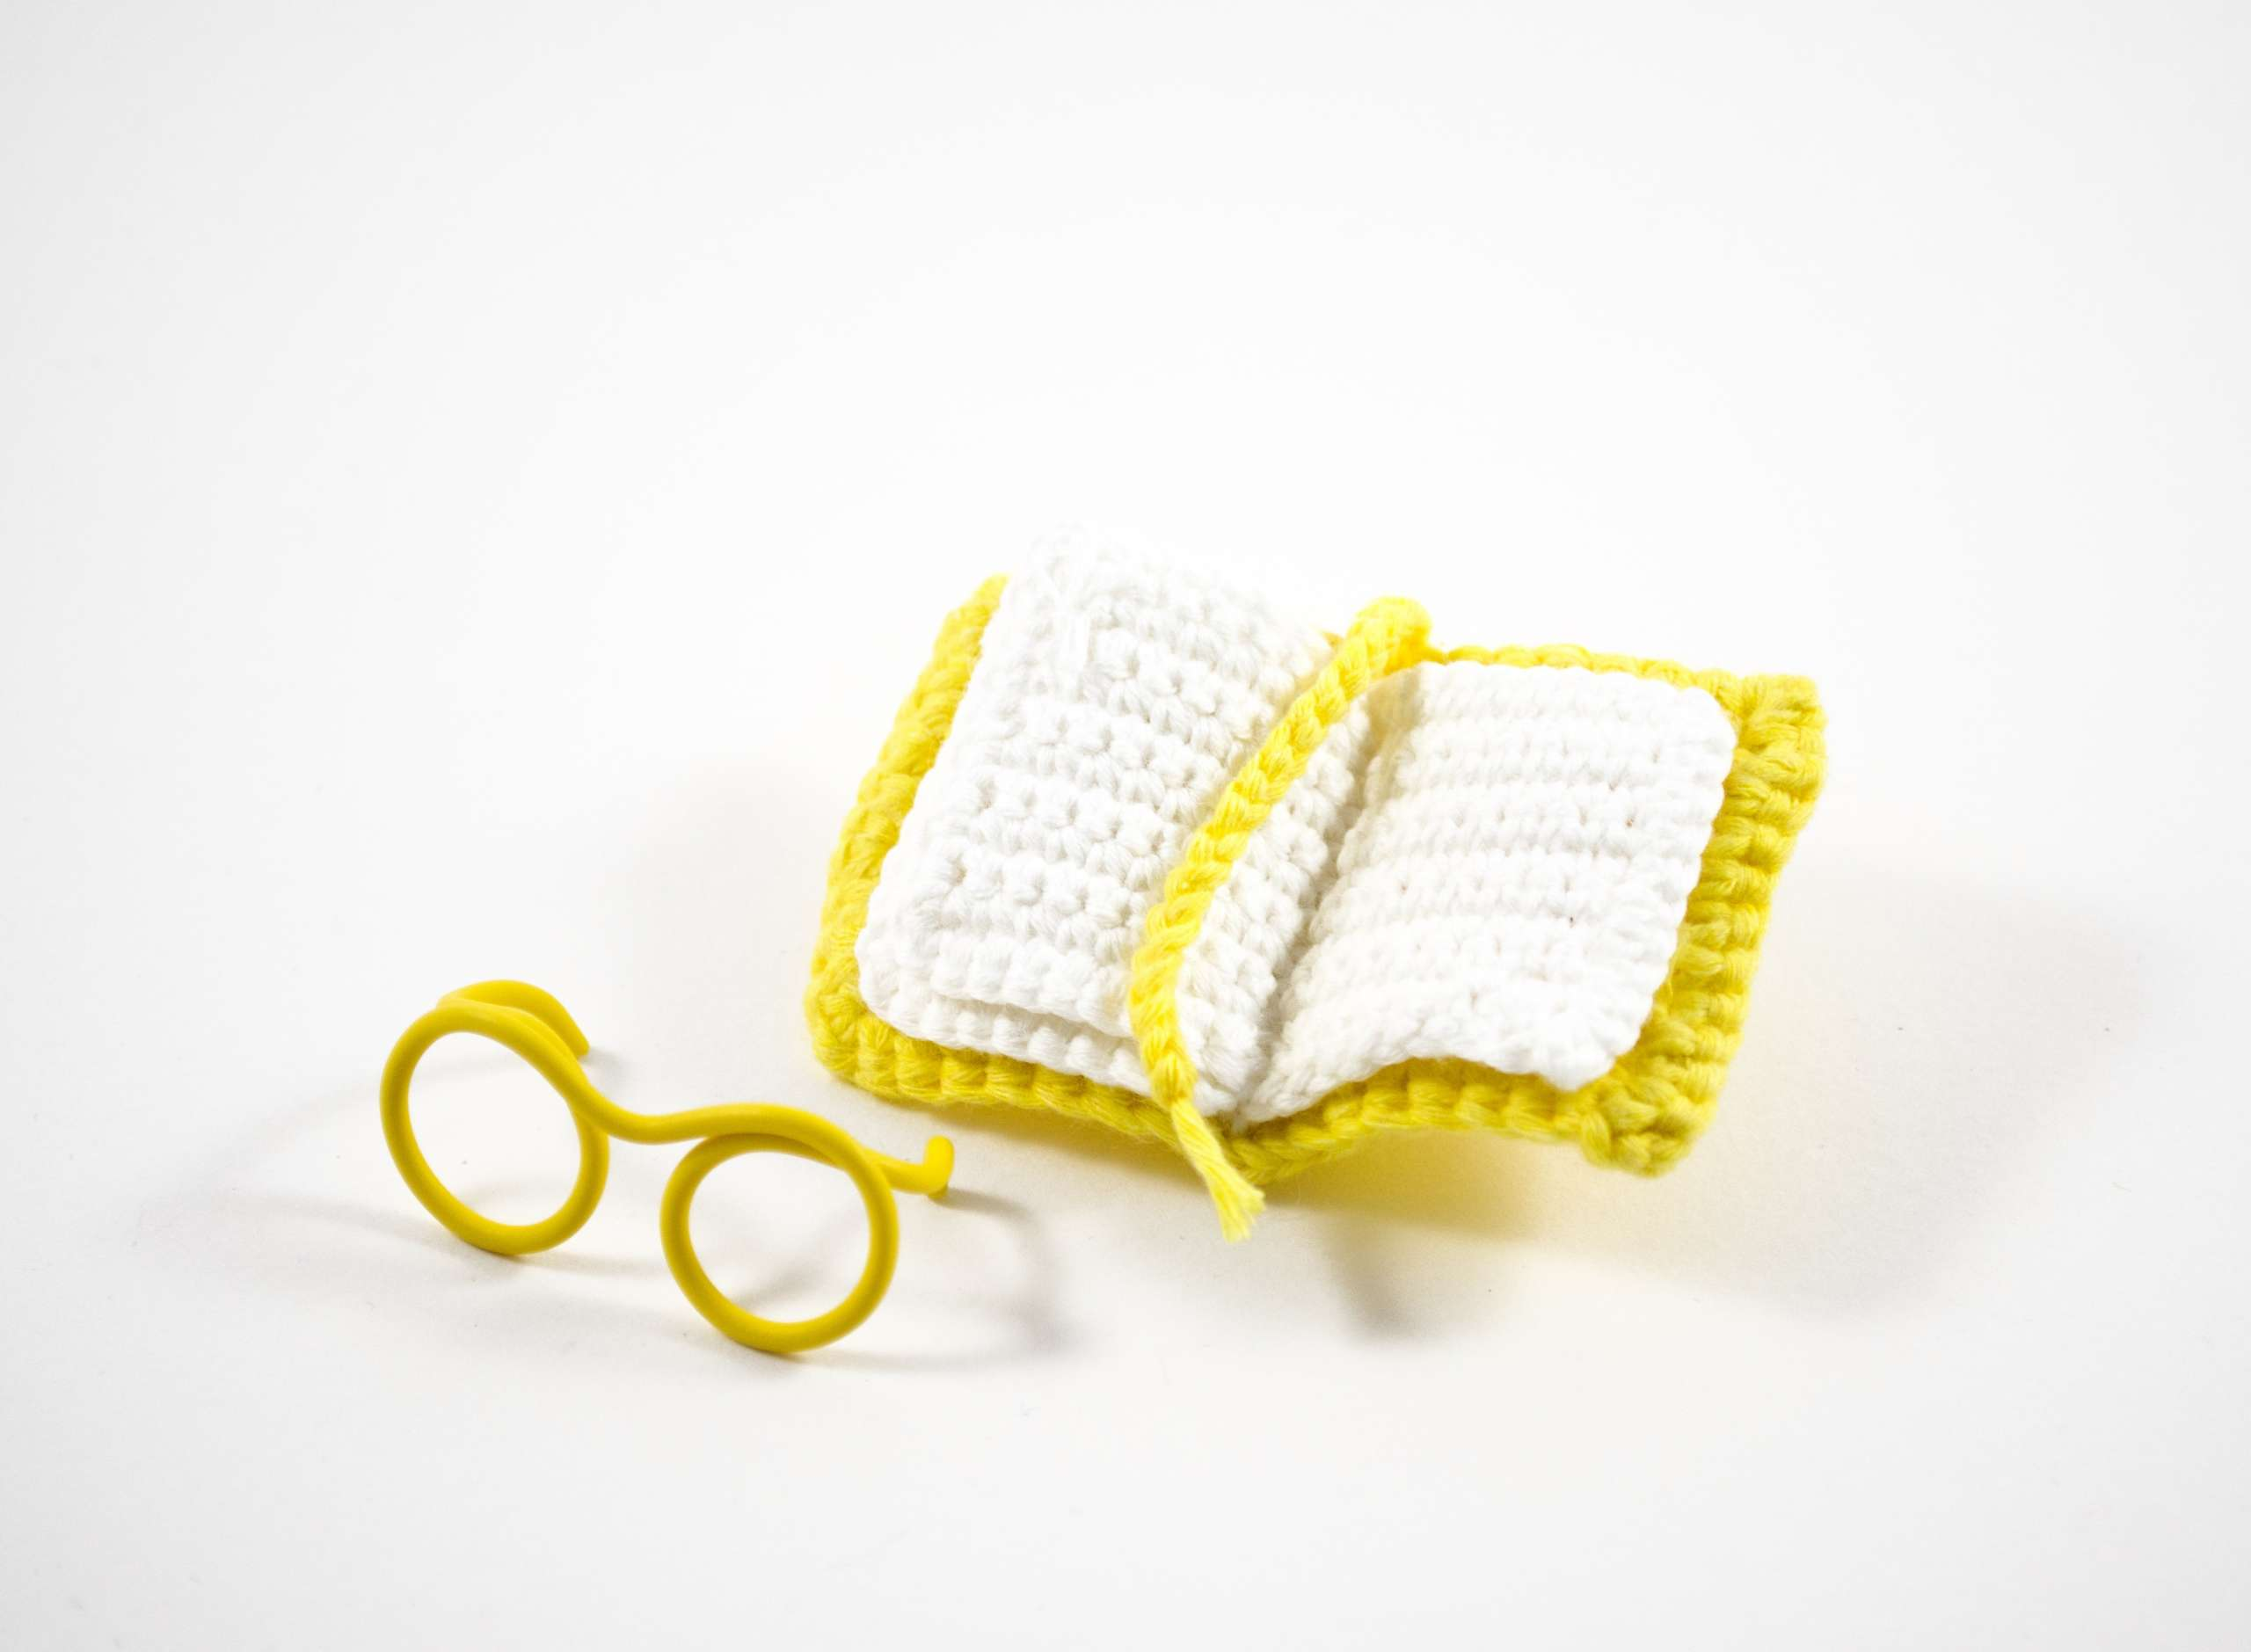 crochet book and wired glasses